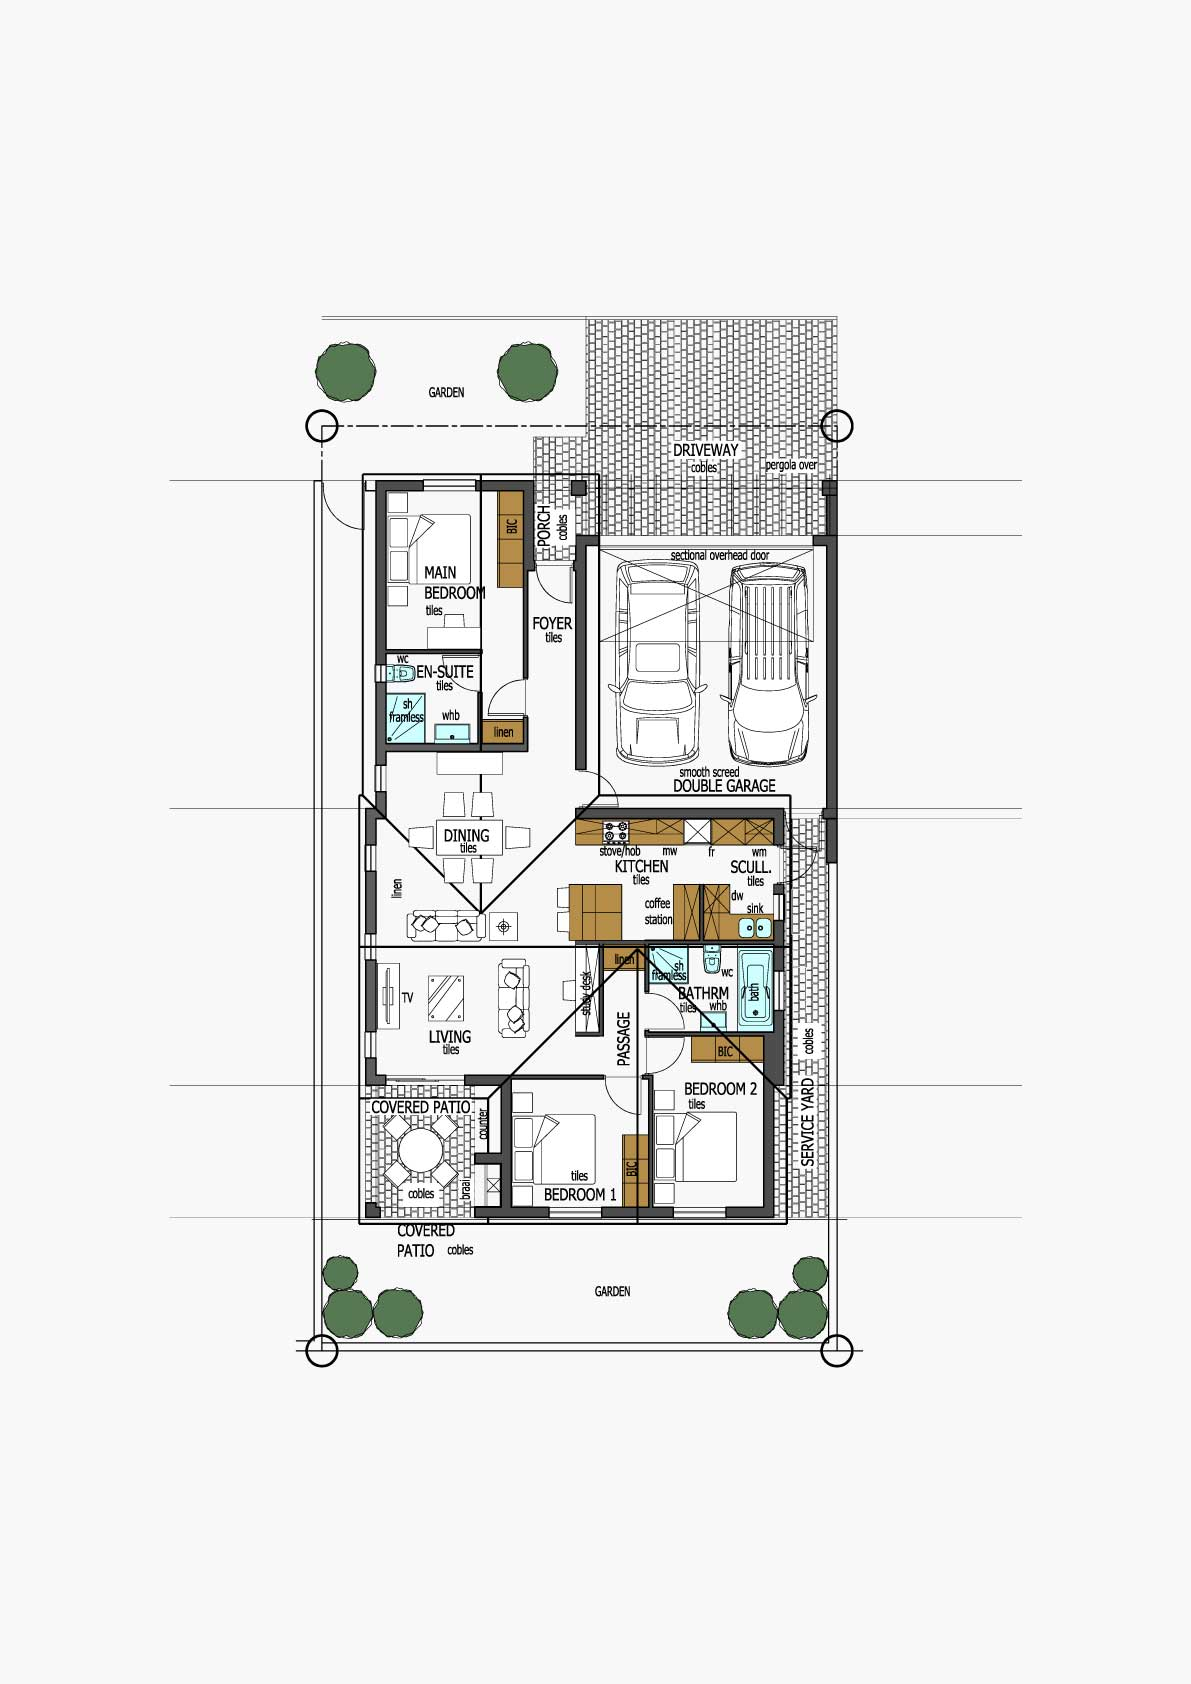 Homes Unit Layout - Type B